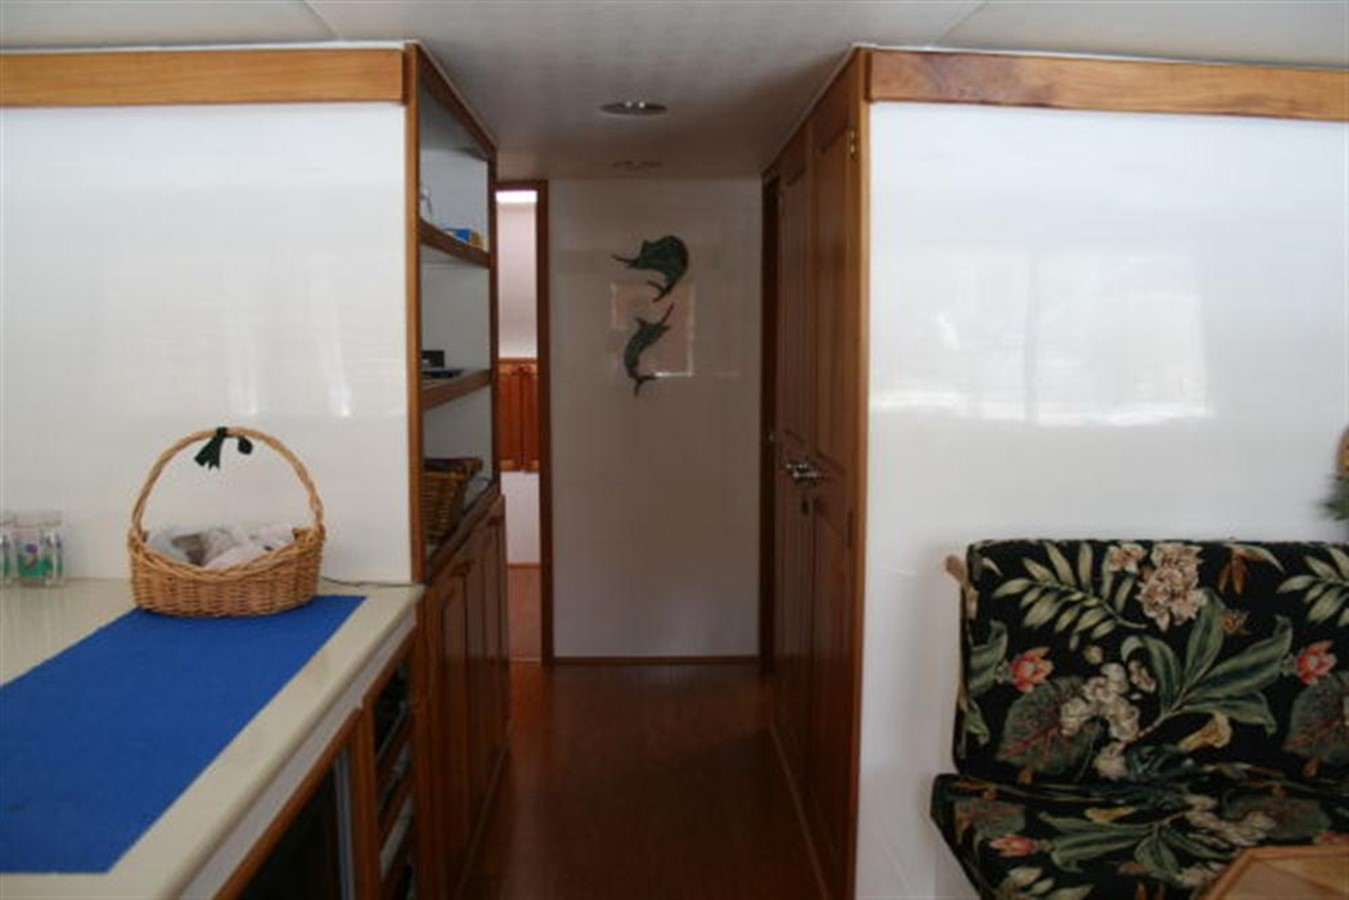 On-deck passageway forward to staterooms 1998 CUSTOM Mick Jarrod PowerCat Sportfisher/Dive Boat Catamaran 156651